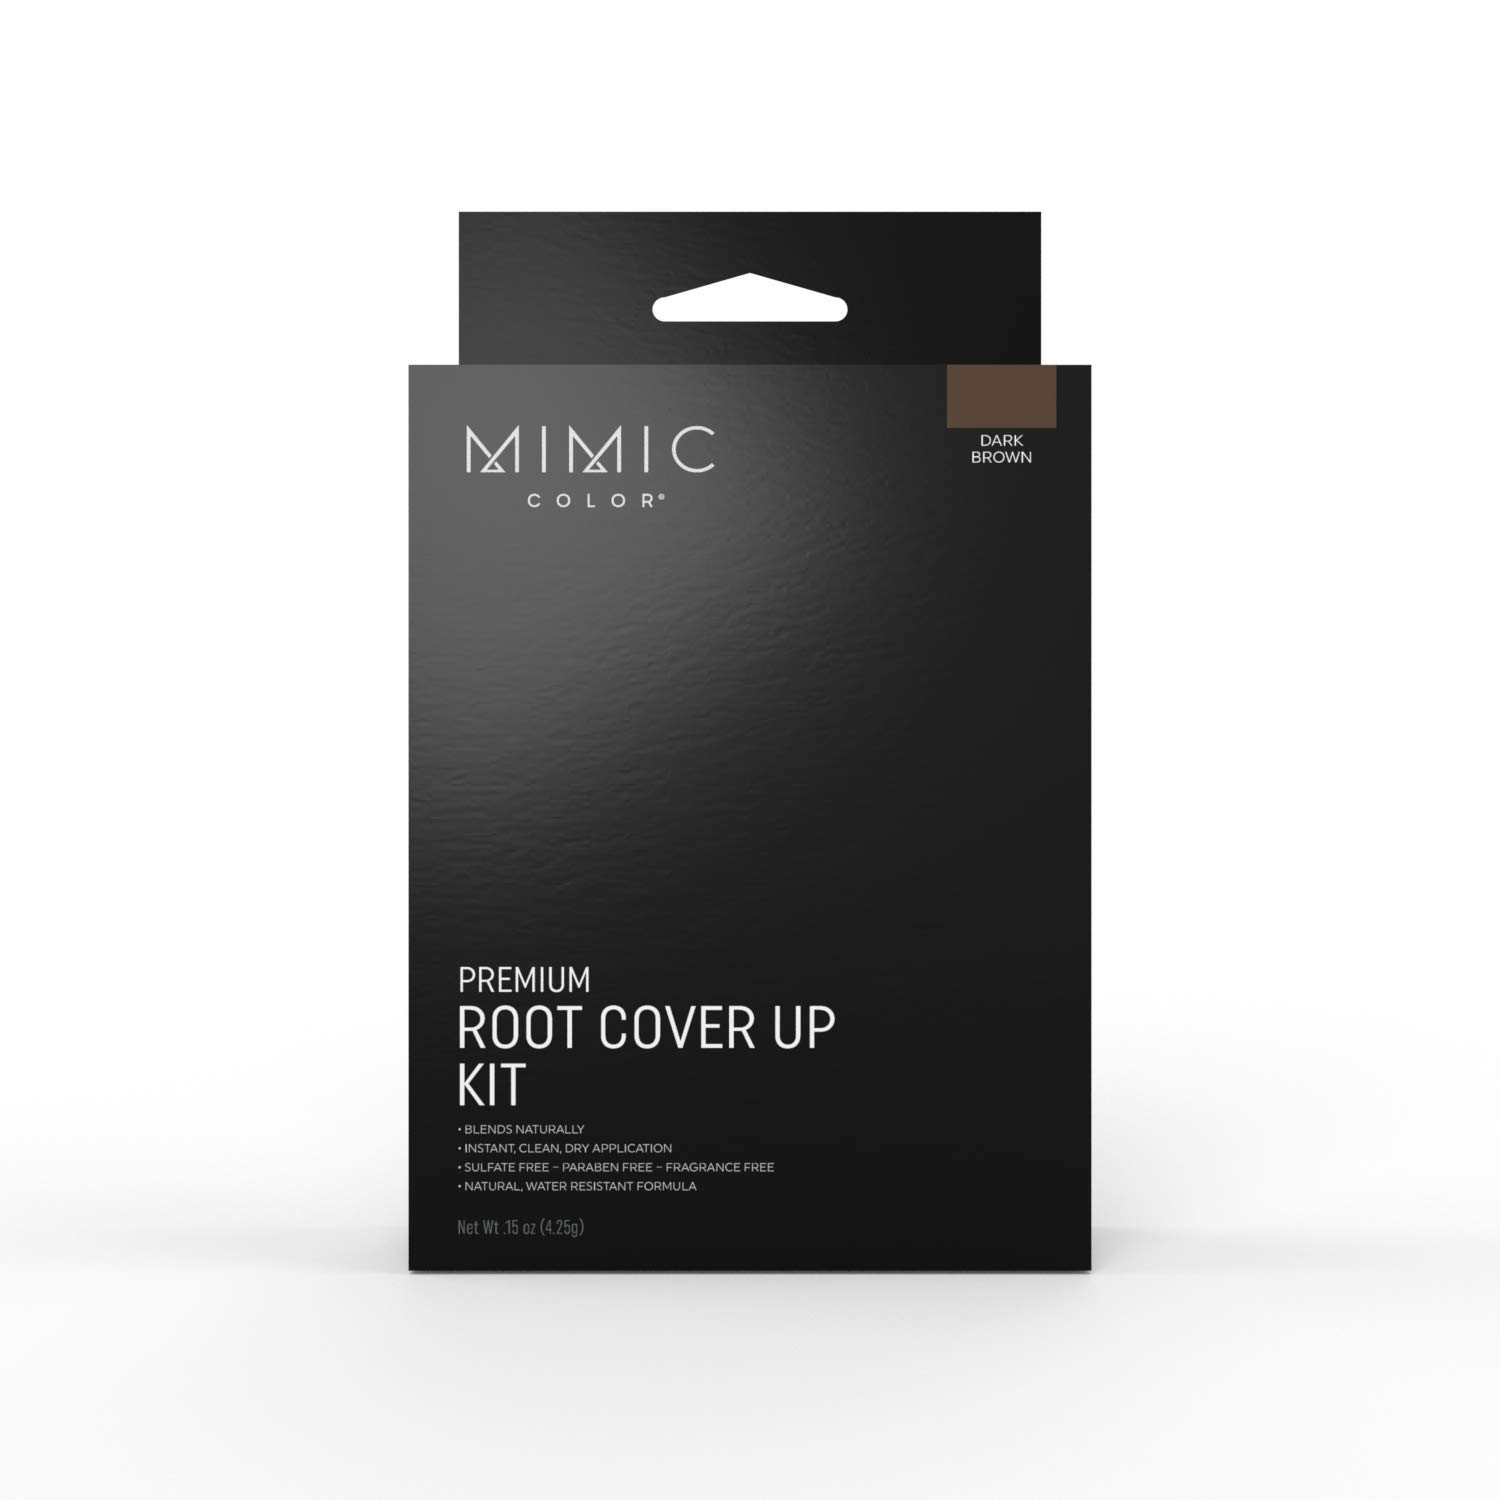 Mimic Color Root Cover Up for Hair Grey Hair Concealer Hair Root Color Touch Up Temporary Hair Color Covers Gray (FULL KIT, DARK BROWN)